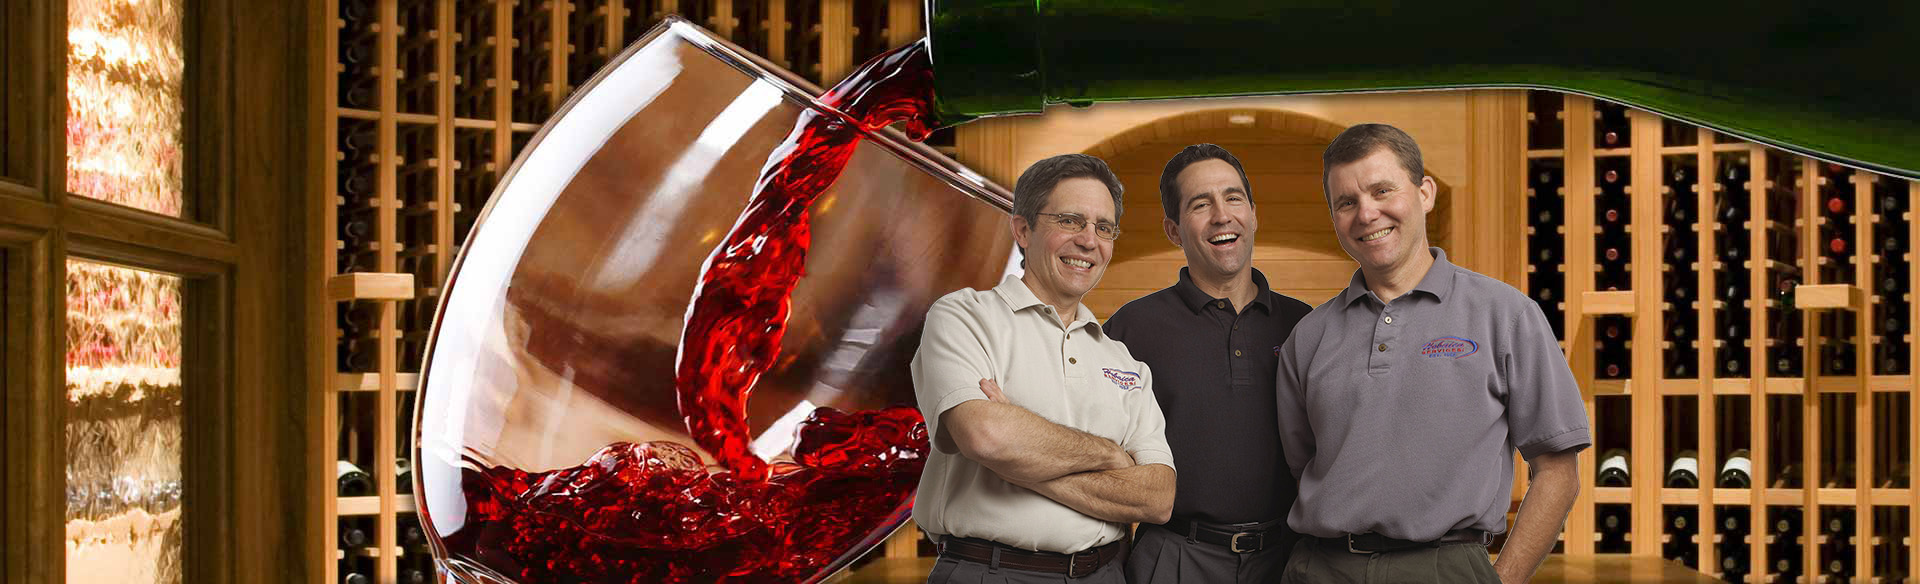 Wine Masters Phoenix AZ Custom Wine Cellars